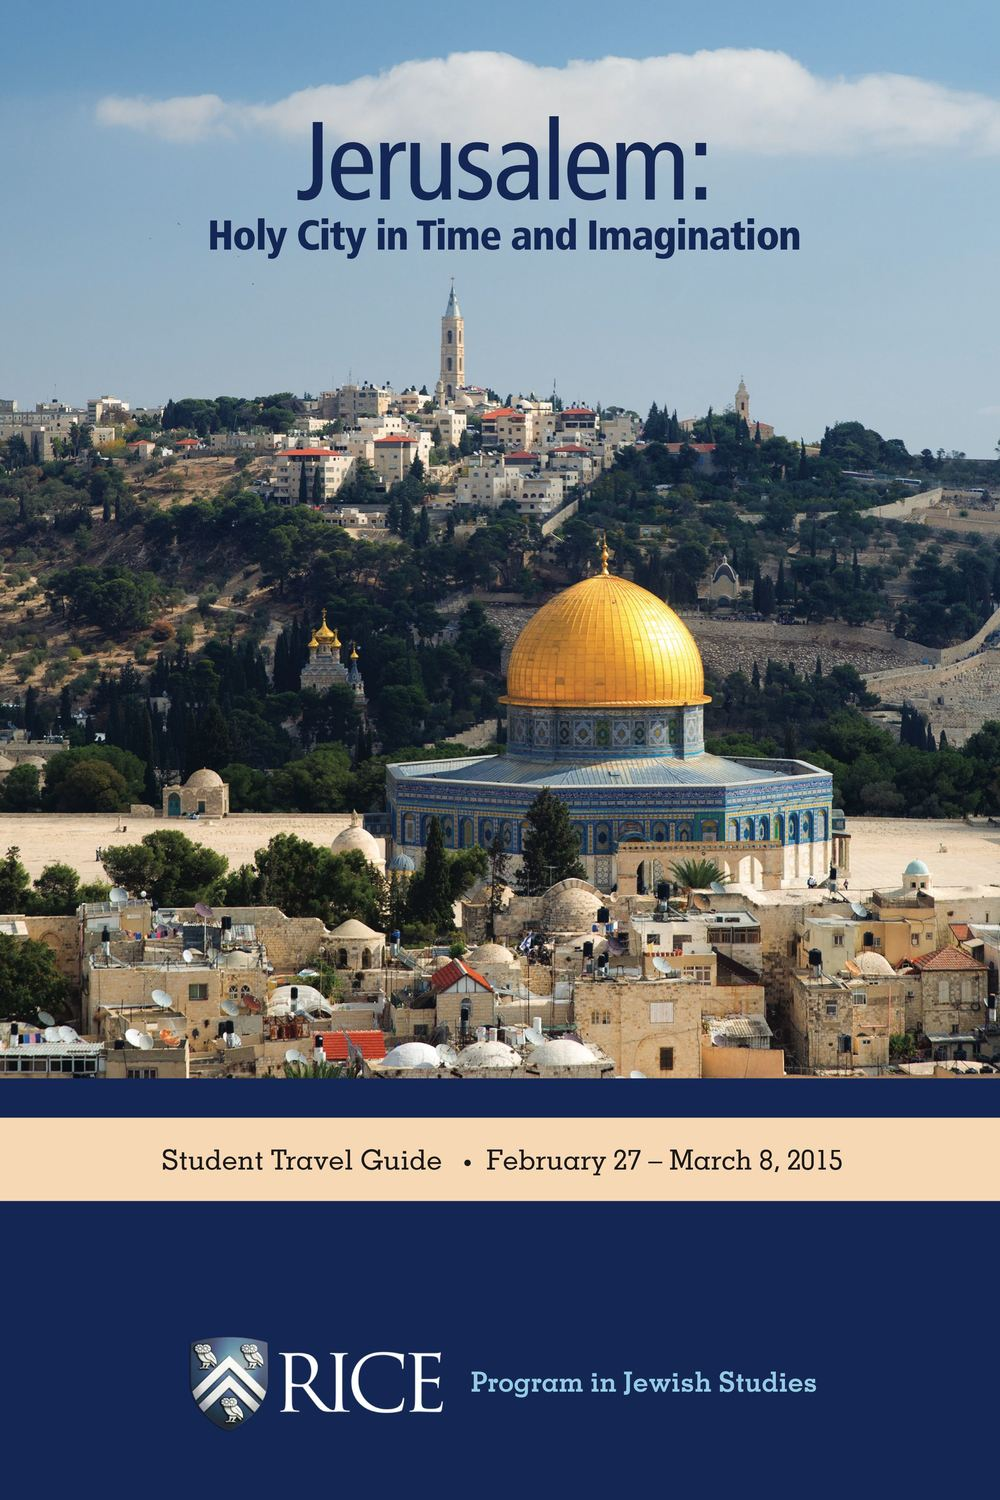 Rice Jerusalum Travel Book final-001.jpg